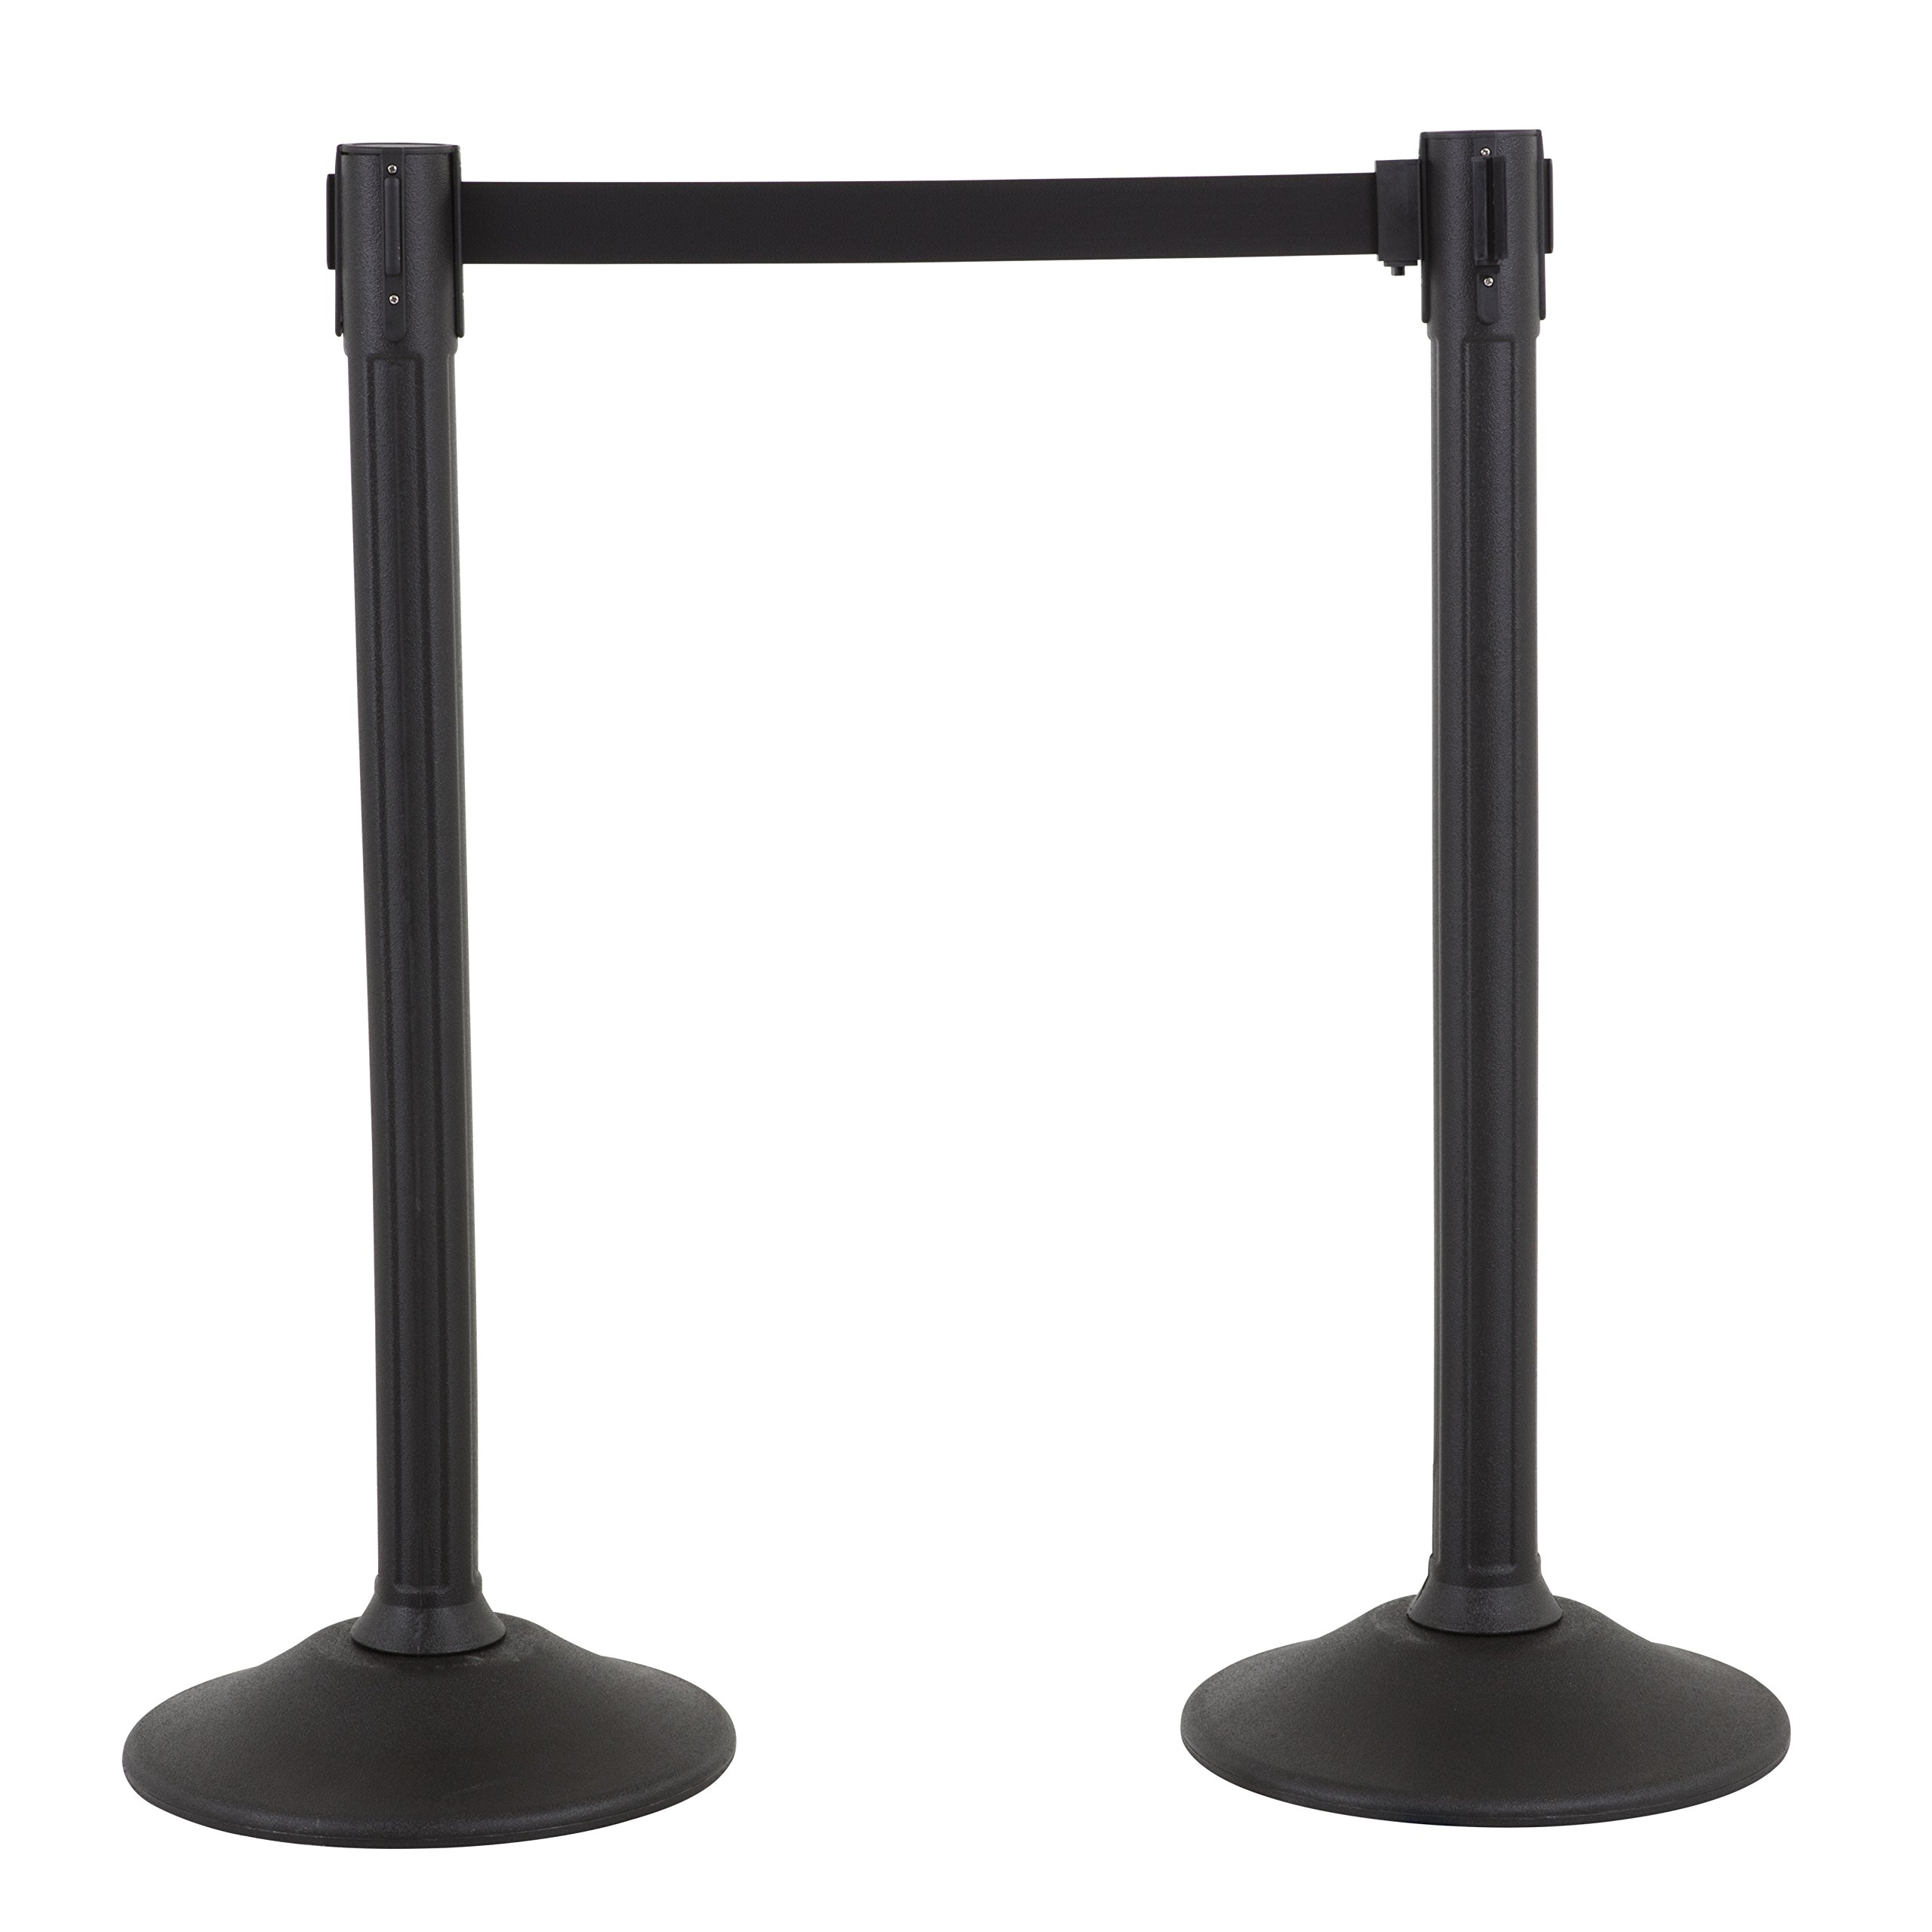 US Weight Sentry Stanchion with 6.5 Foot Retractable Belt - Easy Connect Assembly (2-Pack) by US Weight